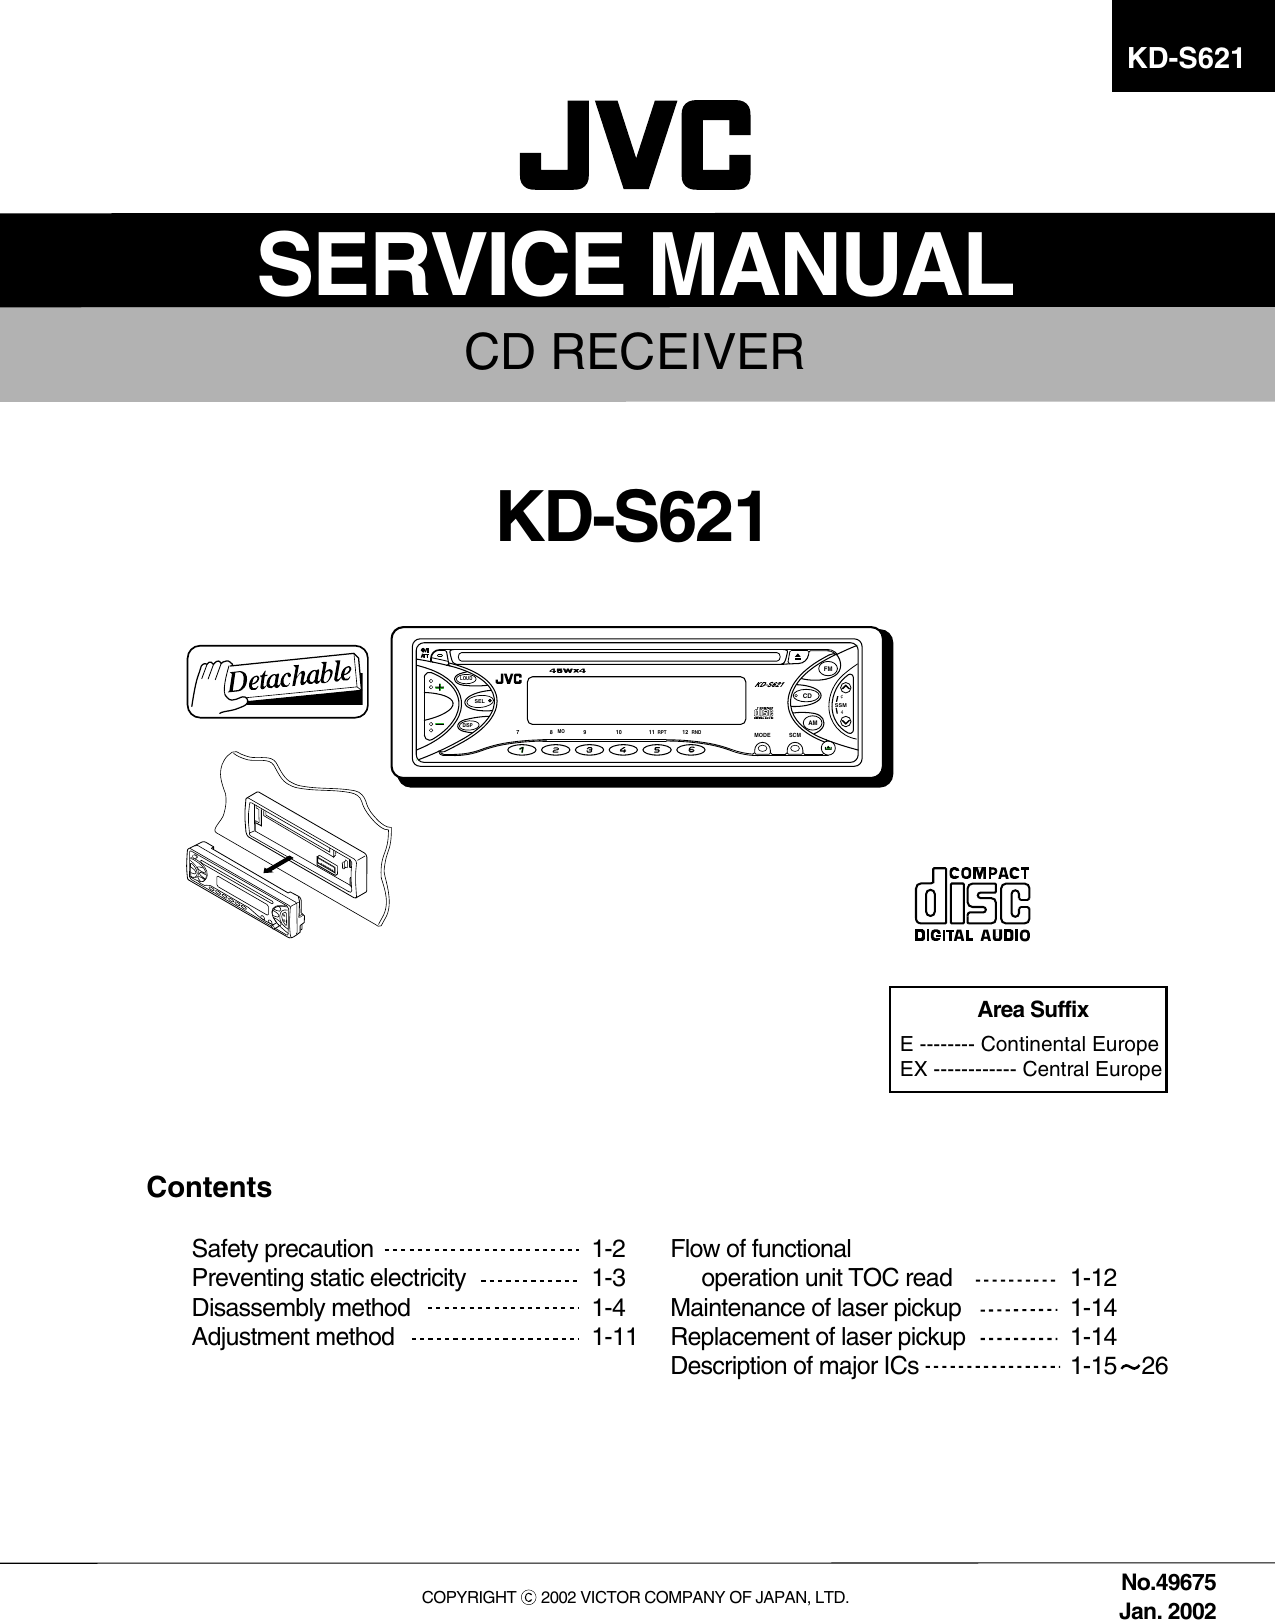 isuzu axiom repair manual ebook in addition ddec iv service manual ebook likewise jvc kdr 520 manual ebook as well honda pcx manual zip ebook additionally 12 best Fuel Supply System images on Pinterest   Spare room  Autos together with valves maintenance manuals also isuzu axiom repair manual ebook besides volvo 240 service manual ebook likewise atlas copco dd manual as well r1 1999 manual also ddec iv service manual ebook. on ford f triton manual ebook ac compressors best compressor for super duty parts accessories auto warehouse seat wiring diagram trusted diagrams search hvac fuse box 2003 f250 7 3 l lariat lay out